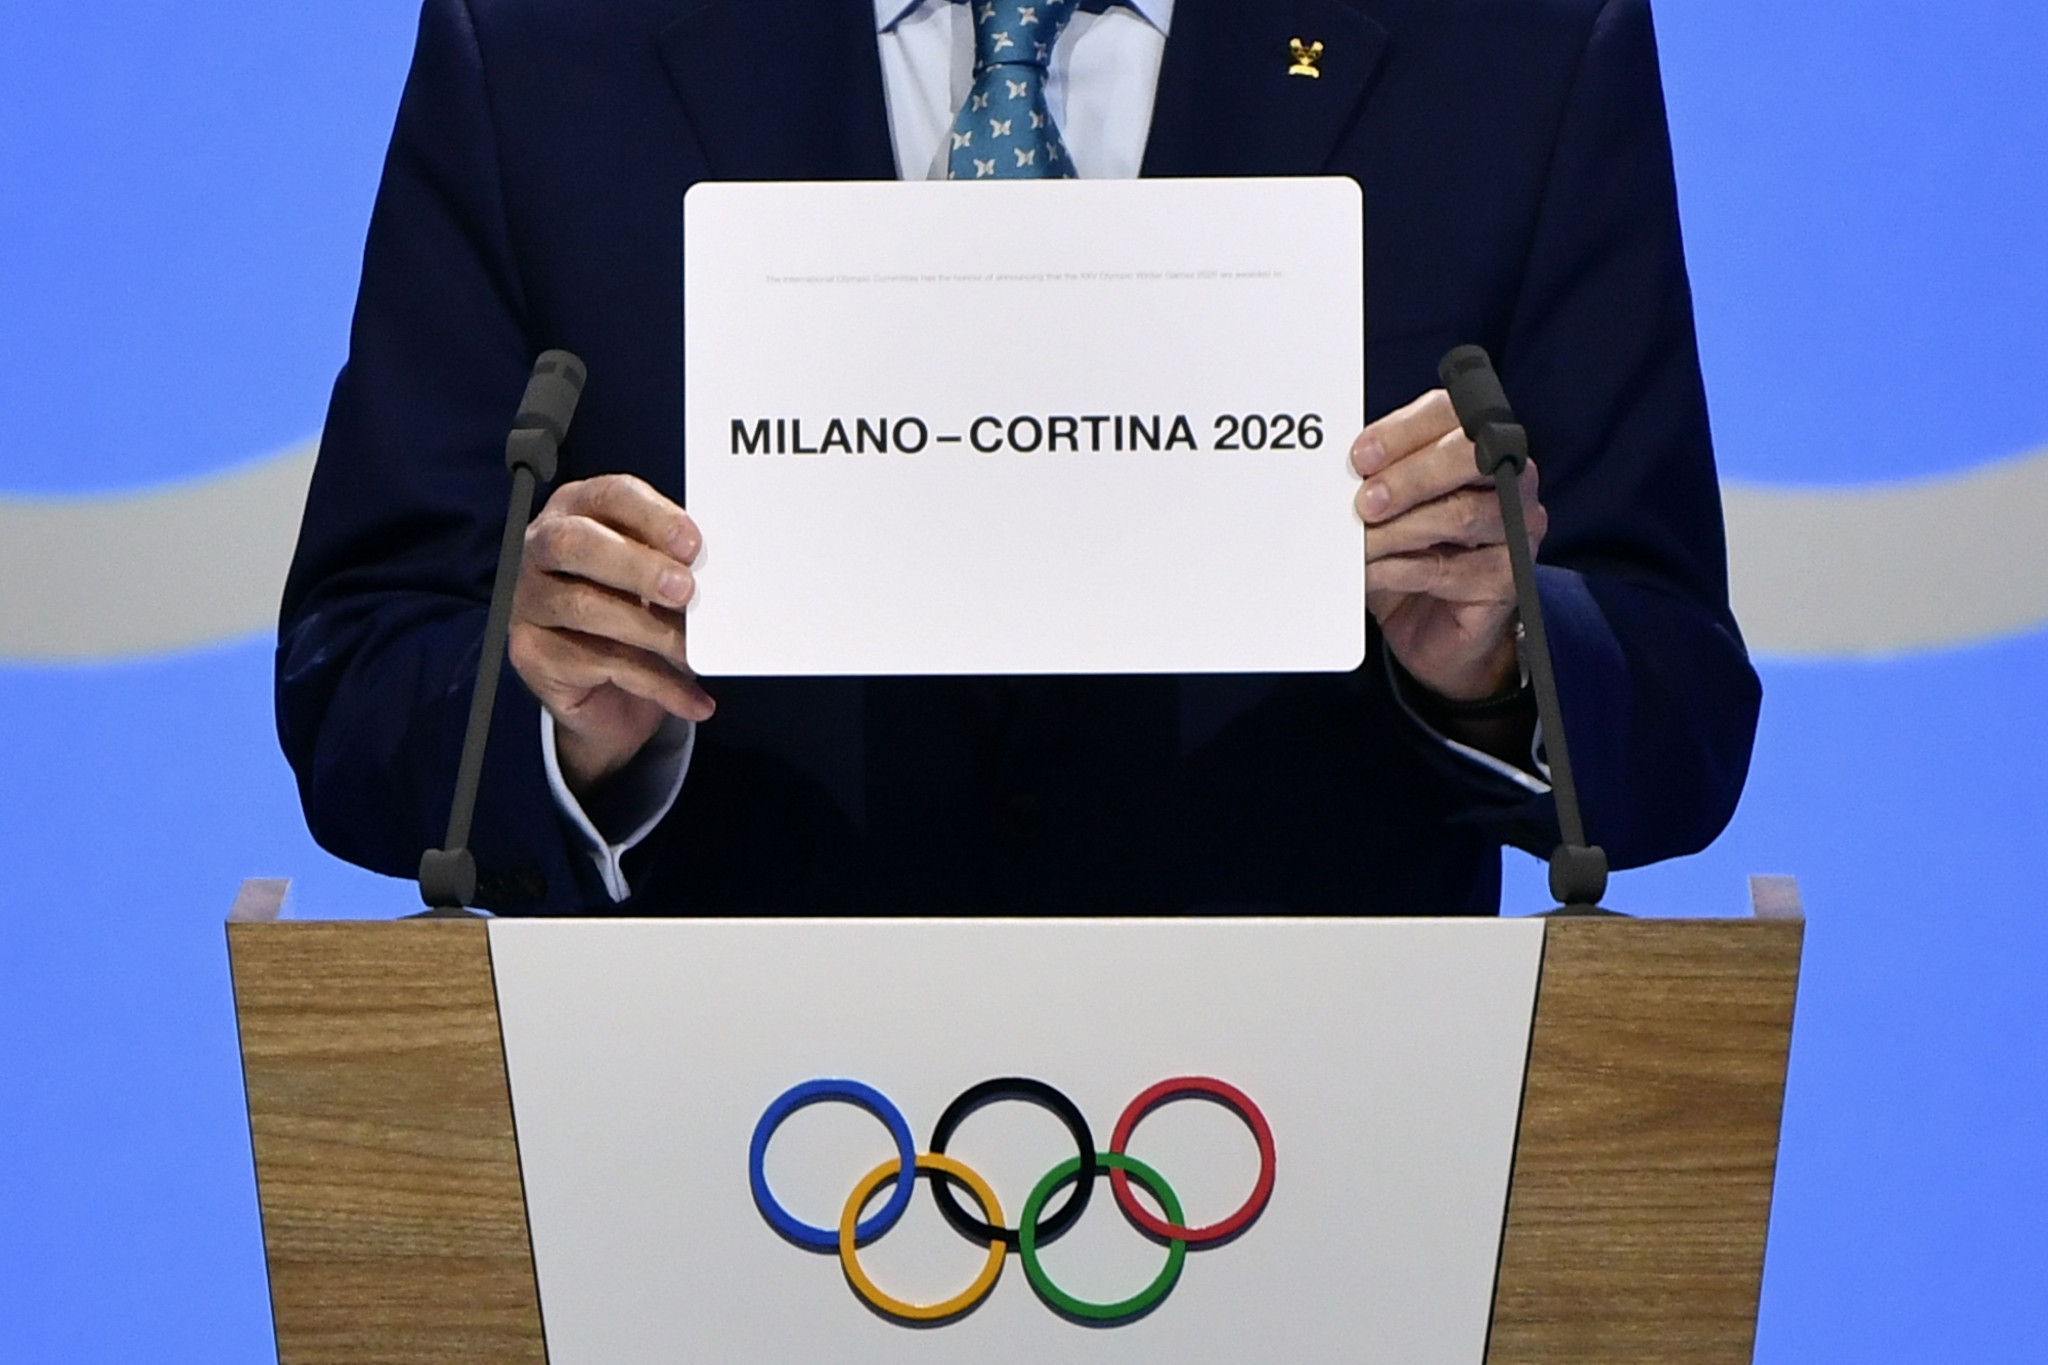 MiCo Song contest launched for Milan Cortina 2026